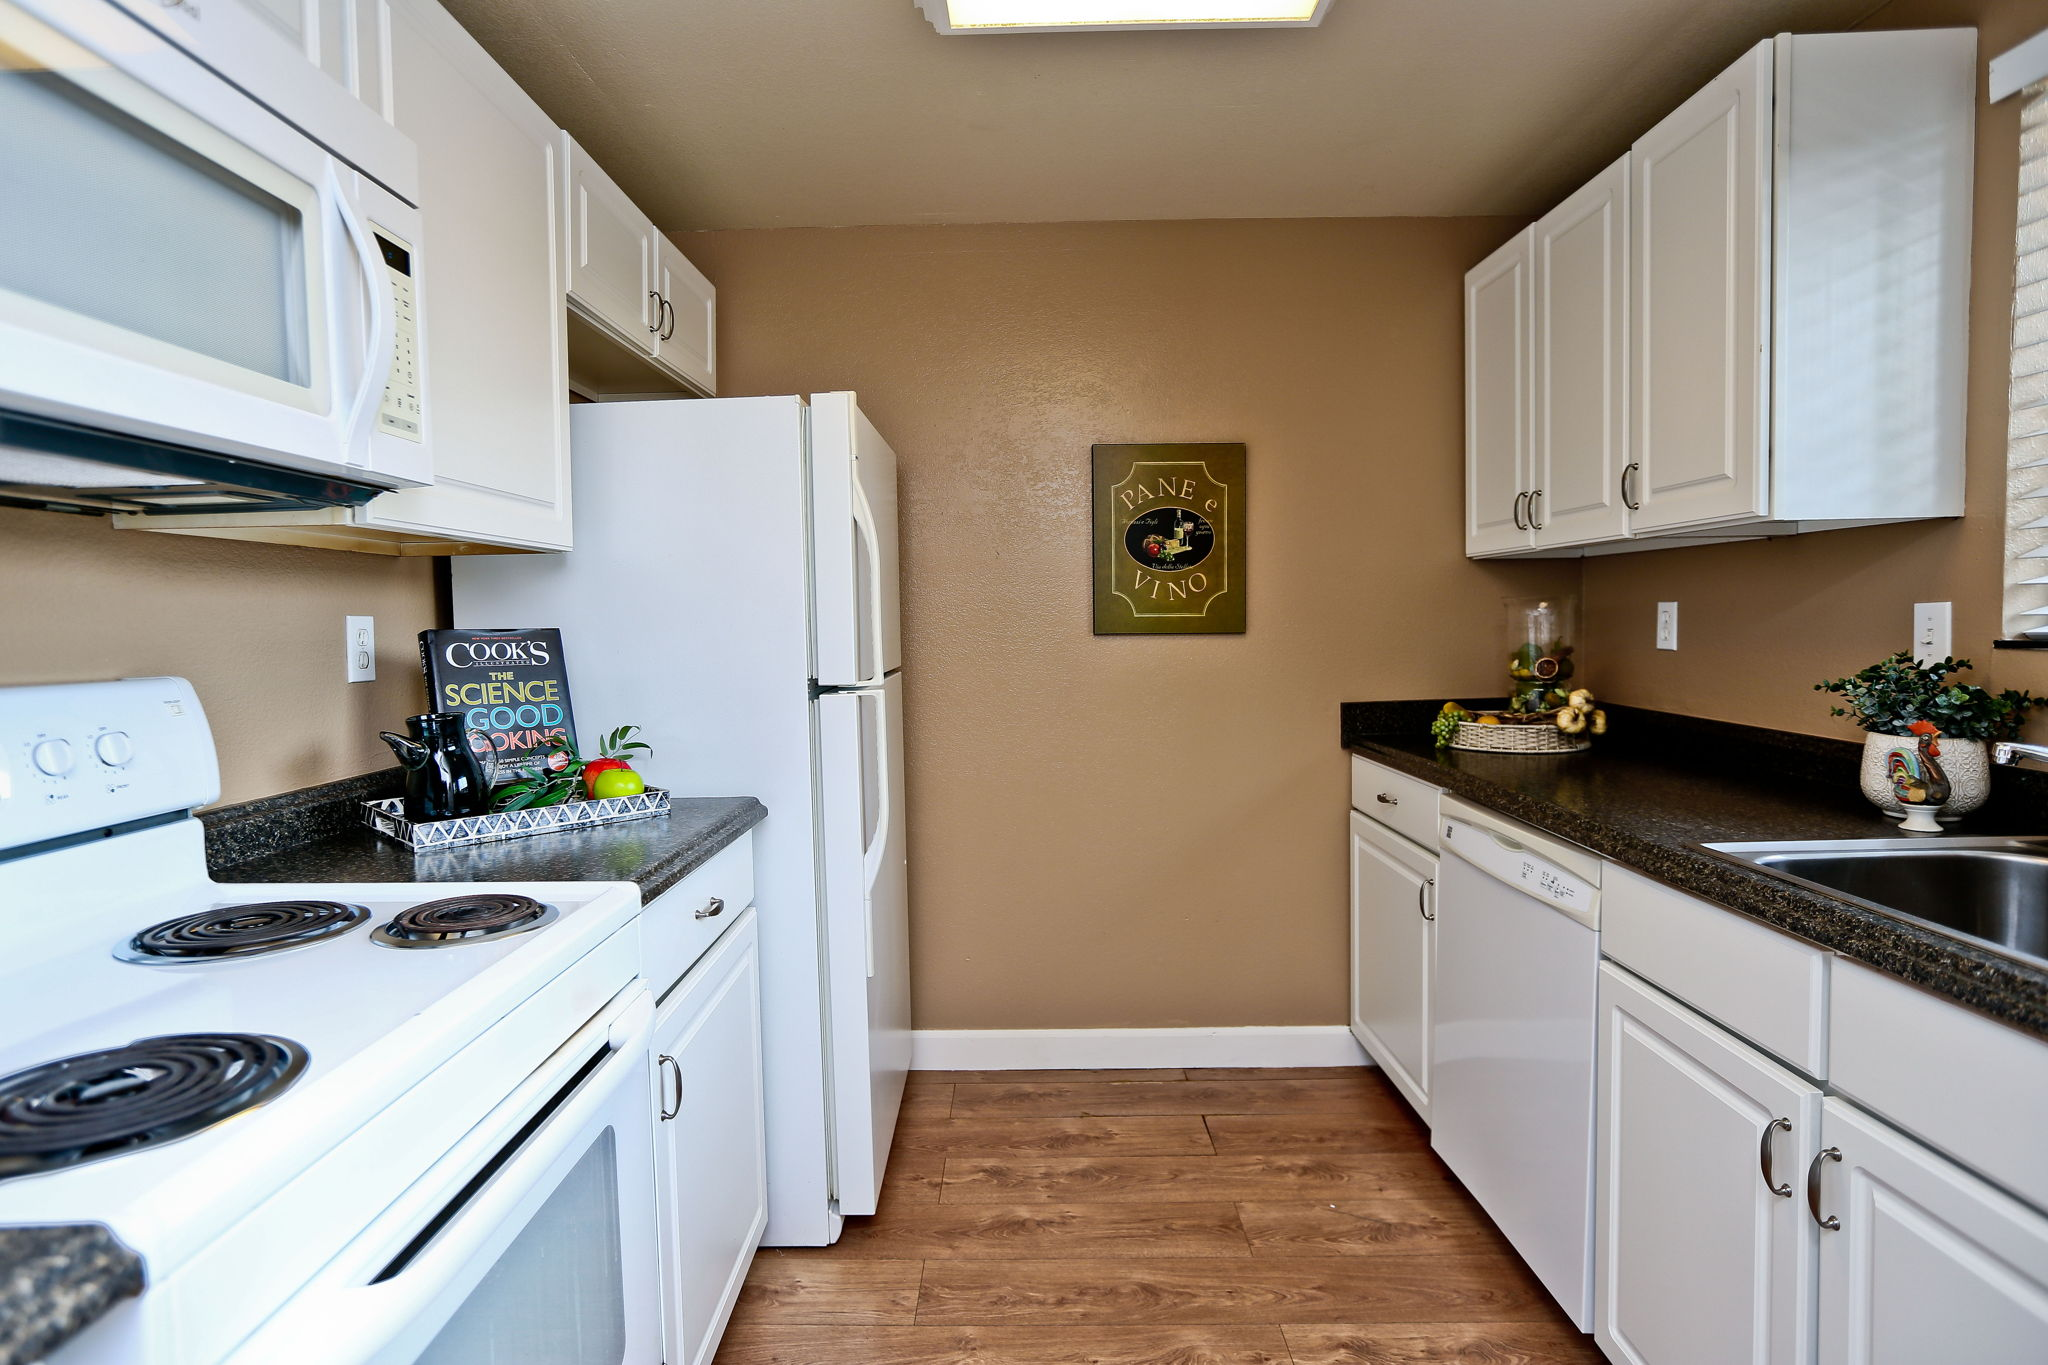 Kitchen with refrigerator, range, microwave